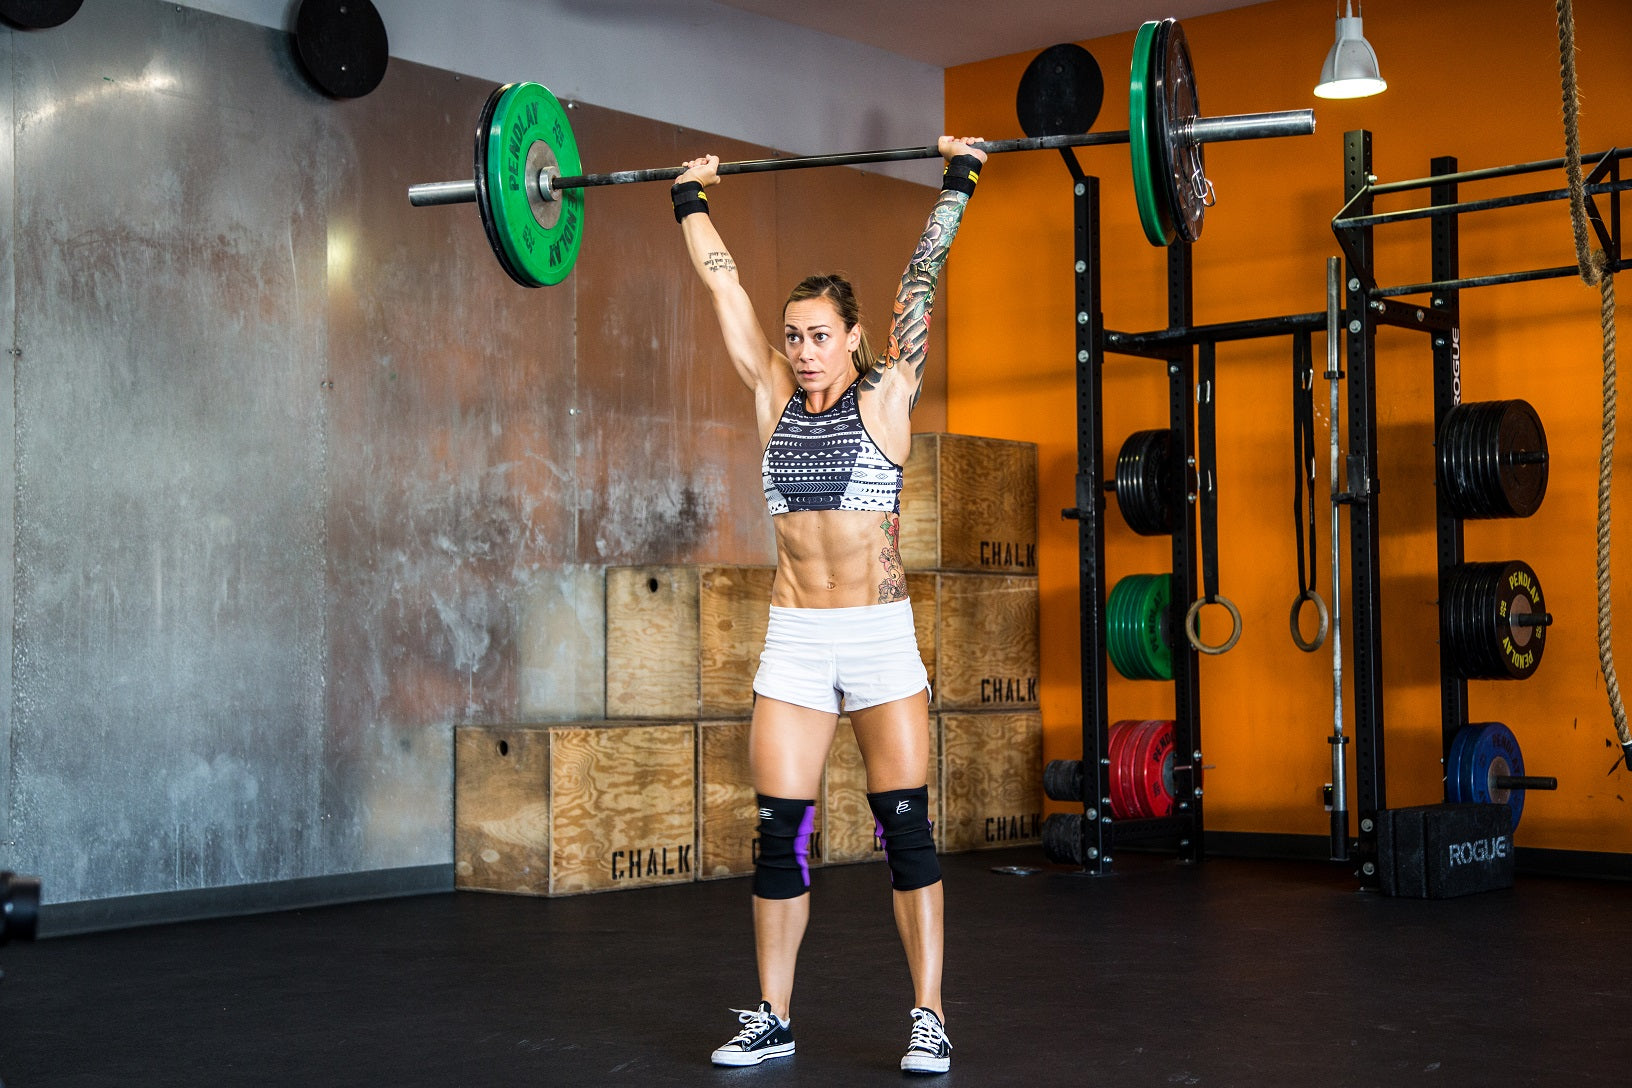 Woman doing Olympic lift at CrossFit box with prosource equipment